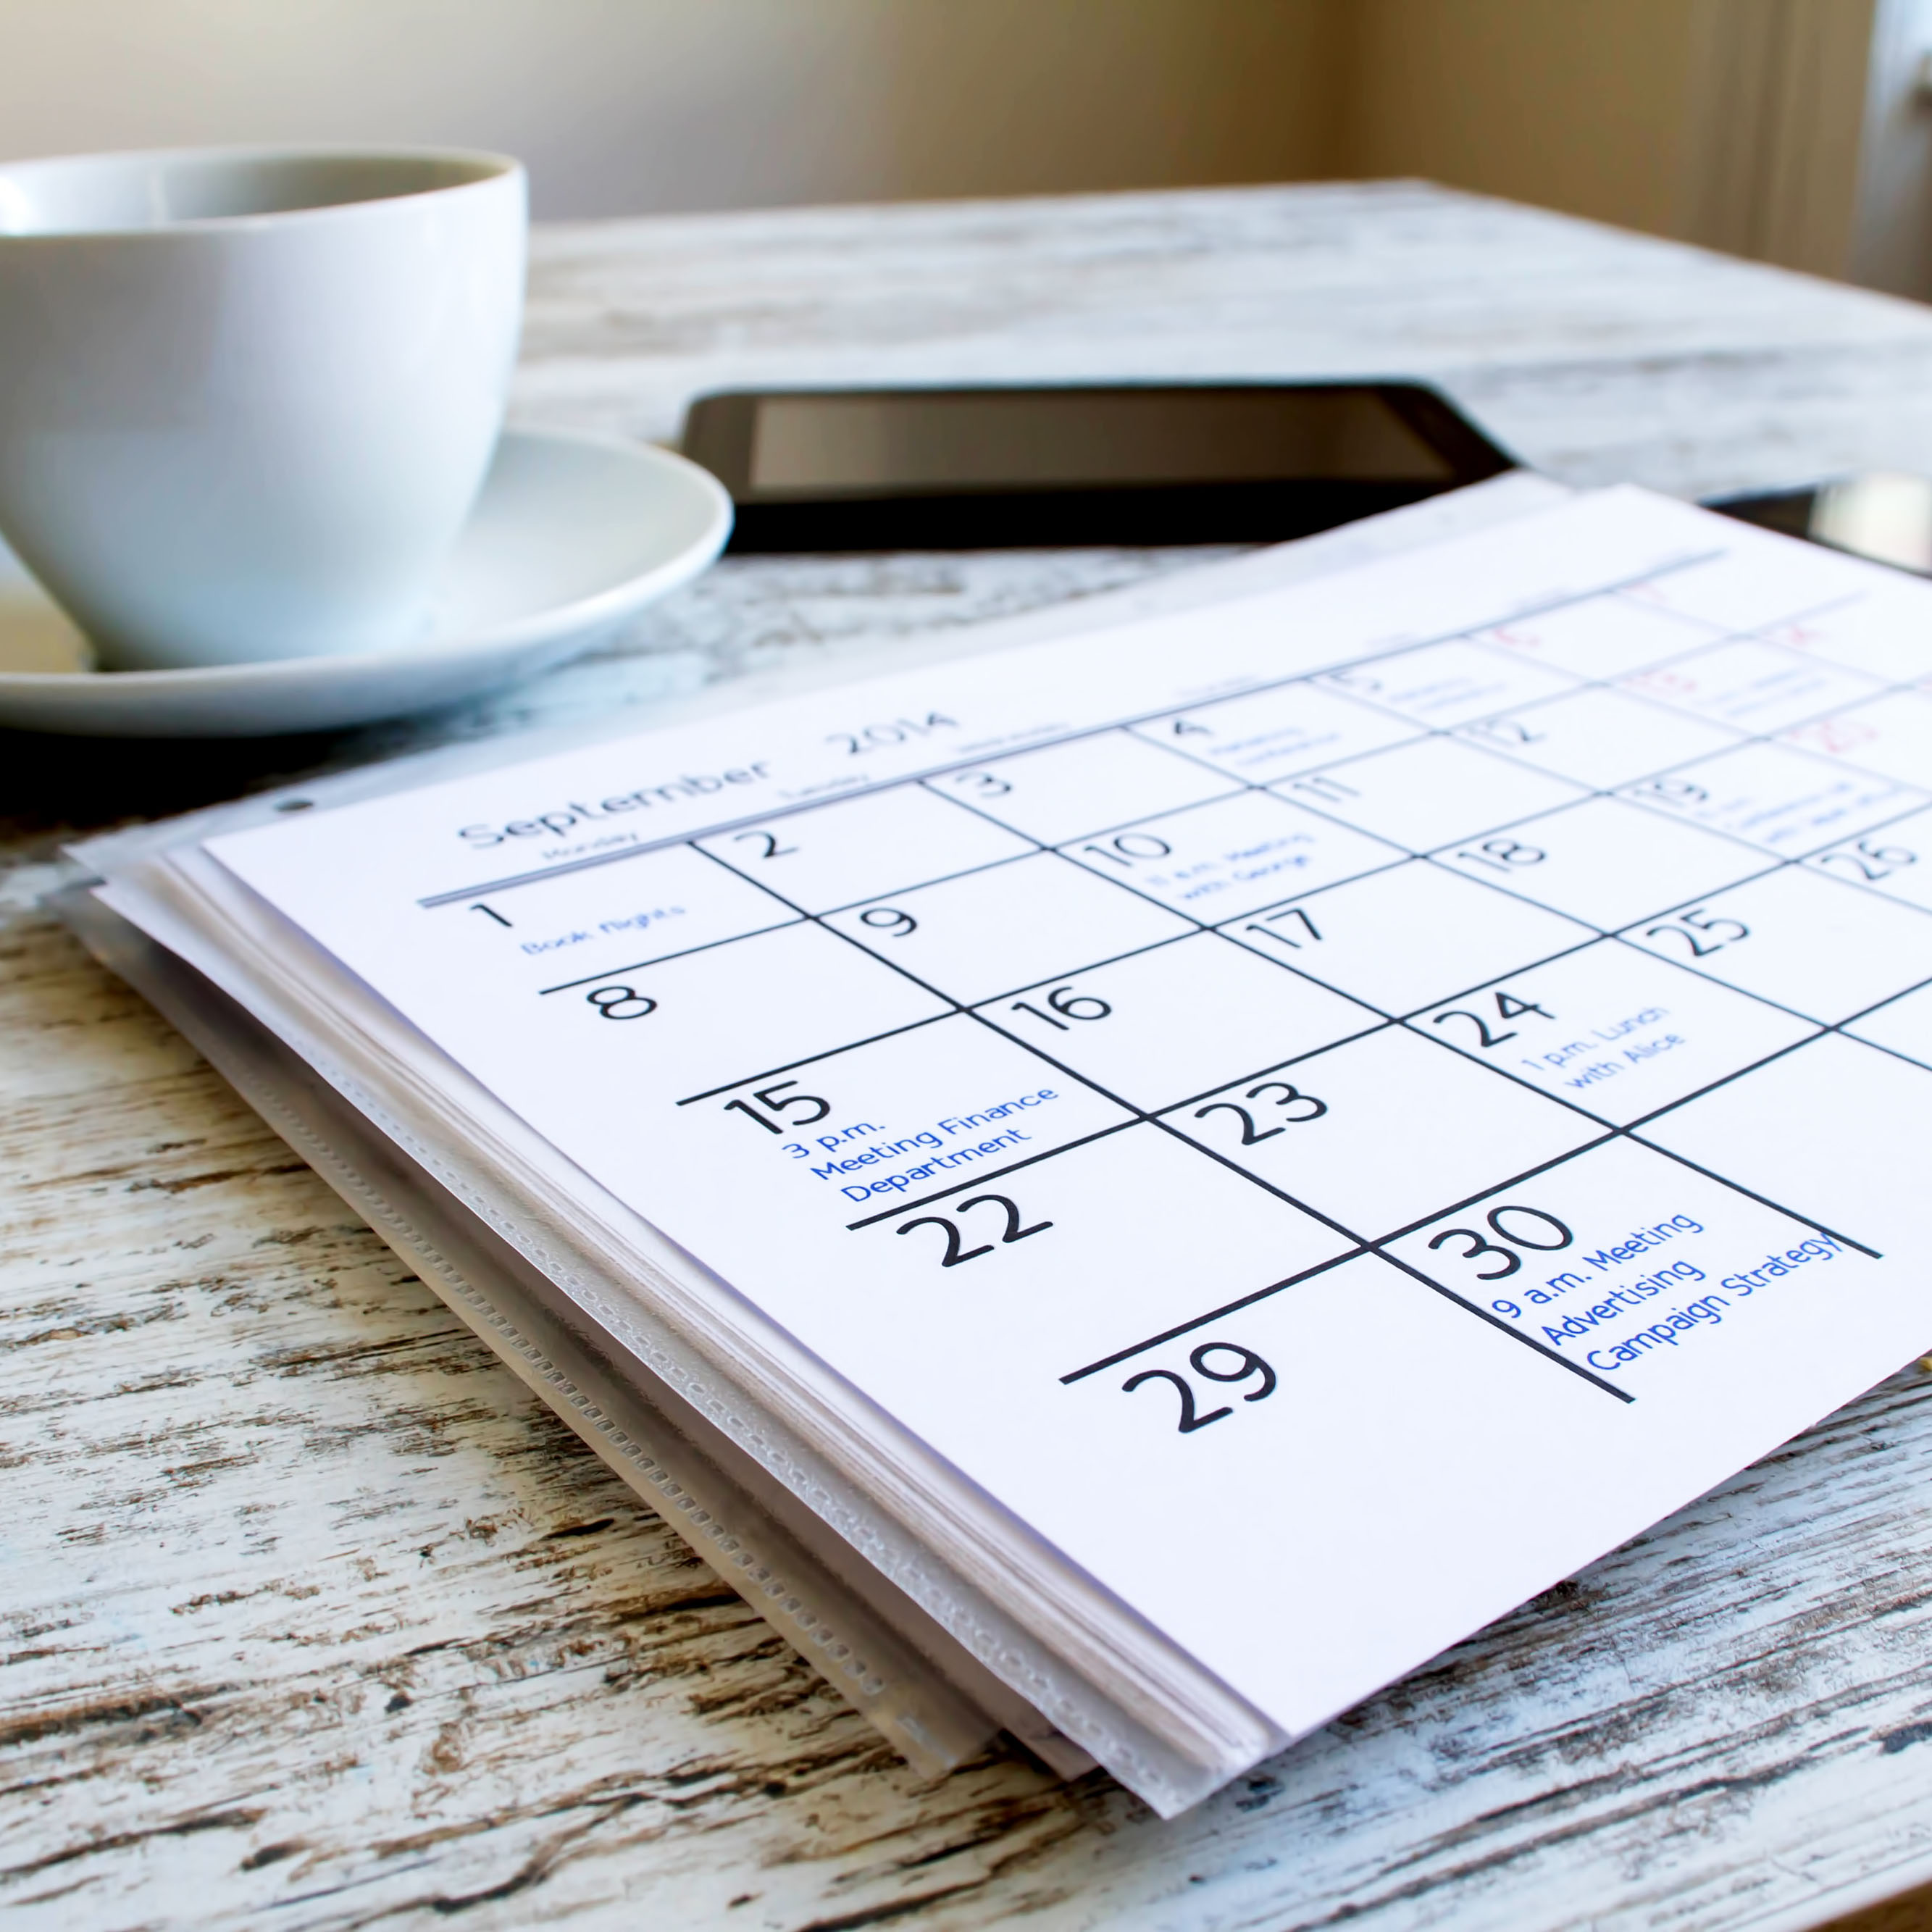 A calendar and cup of coffee